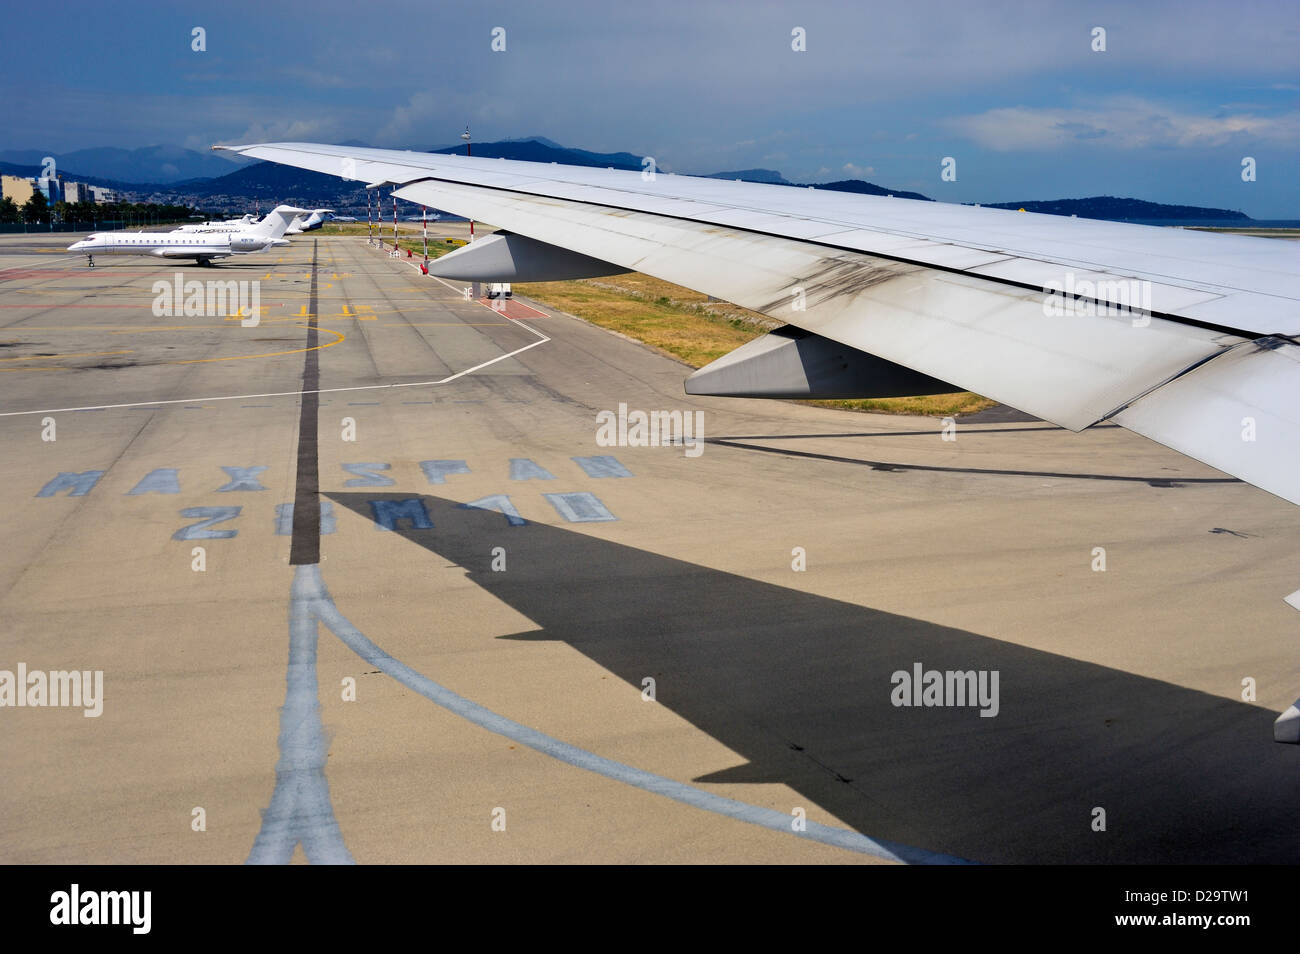 Airplane wing taxiing at an International airport, France - Stock Image